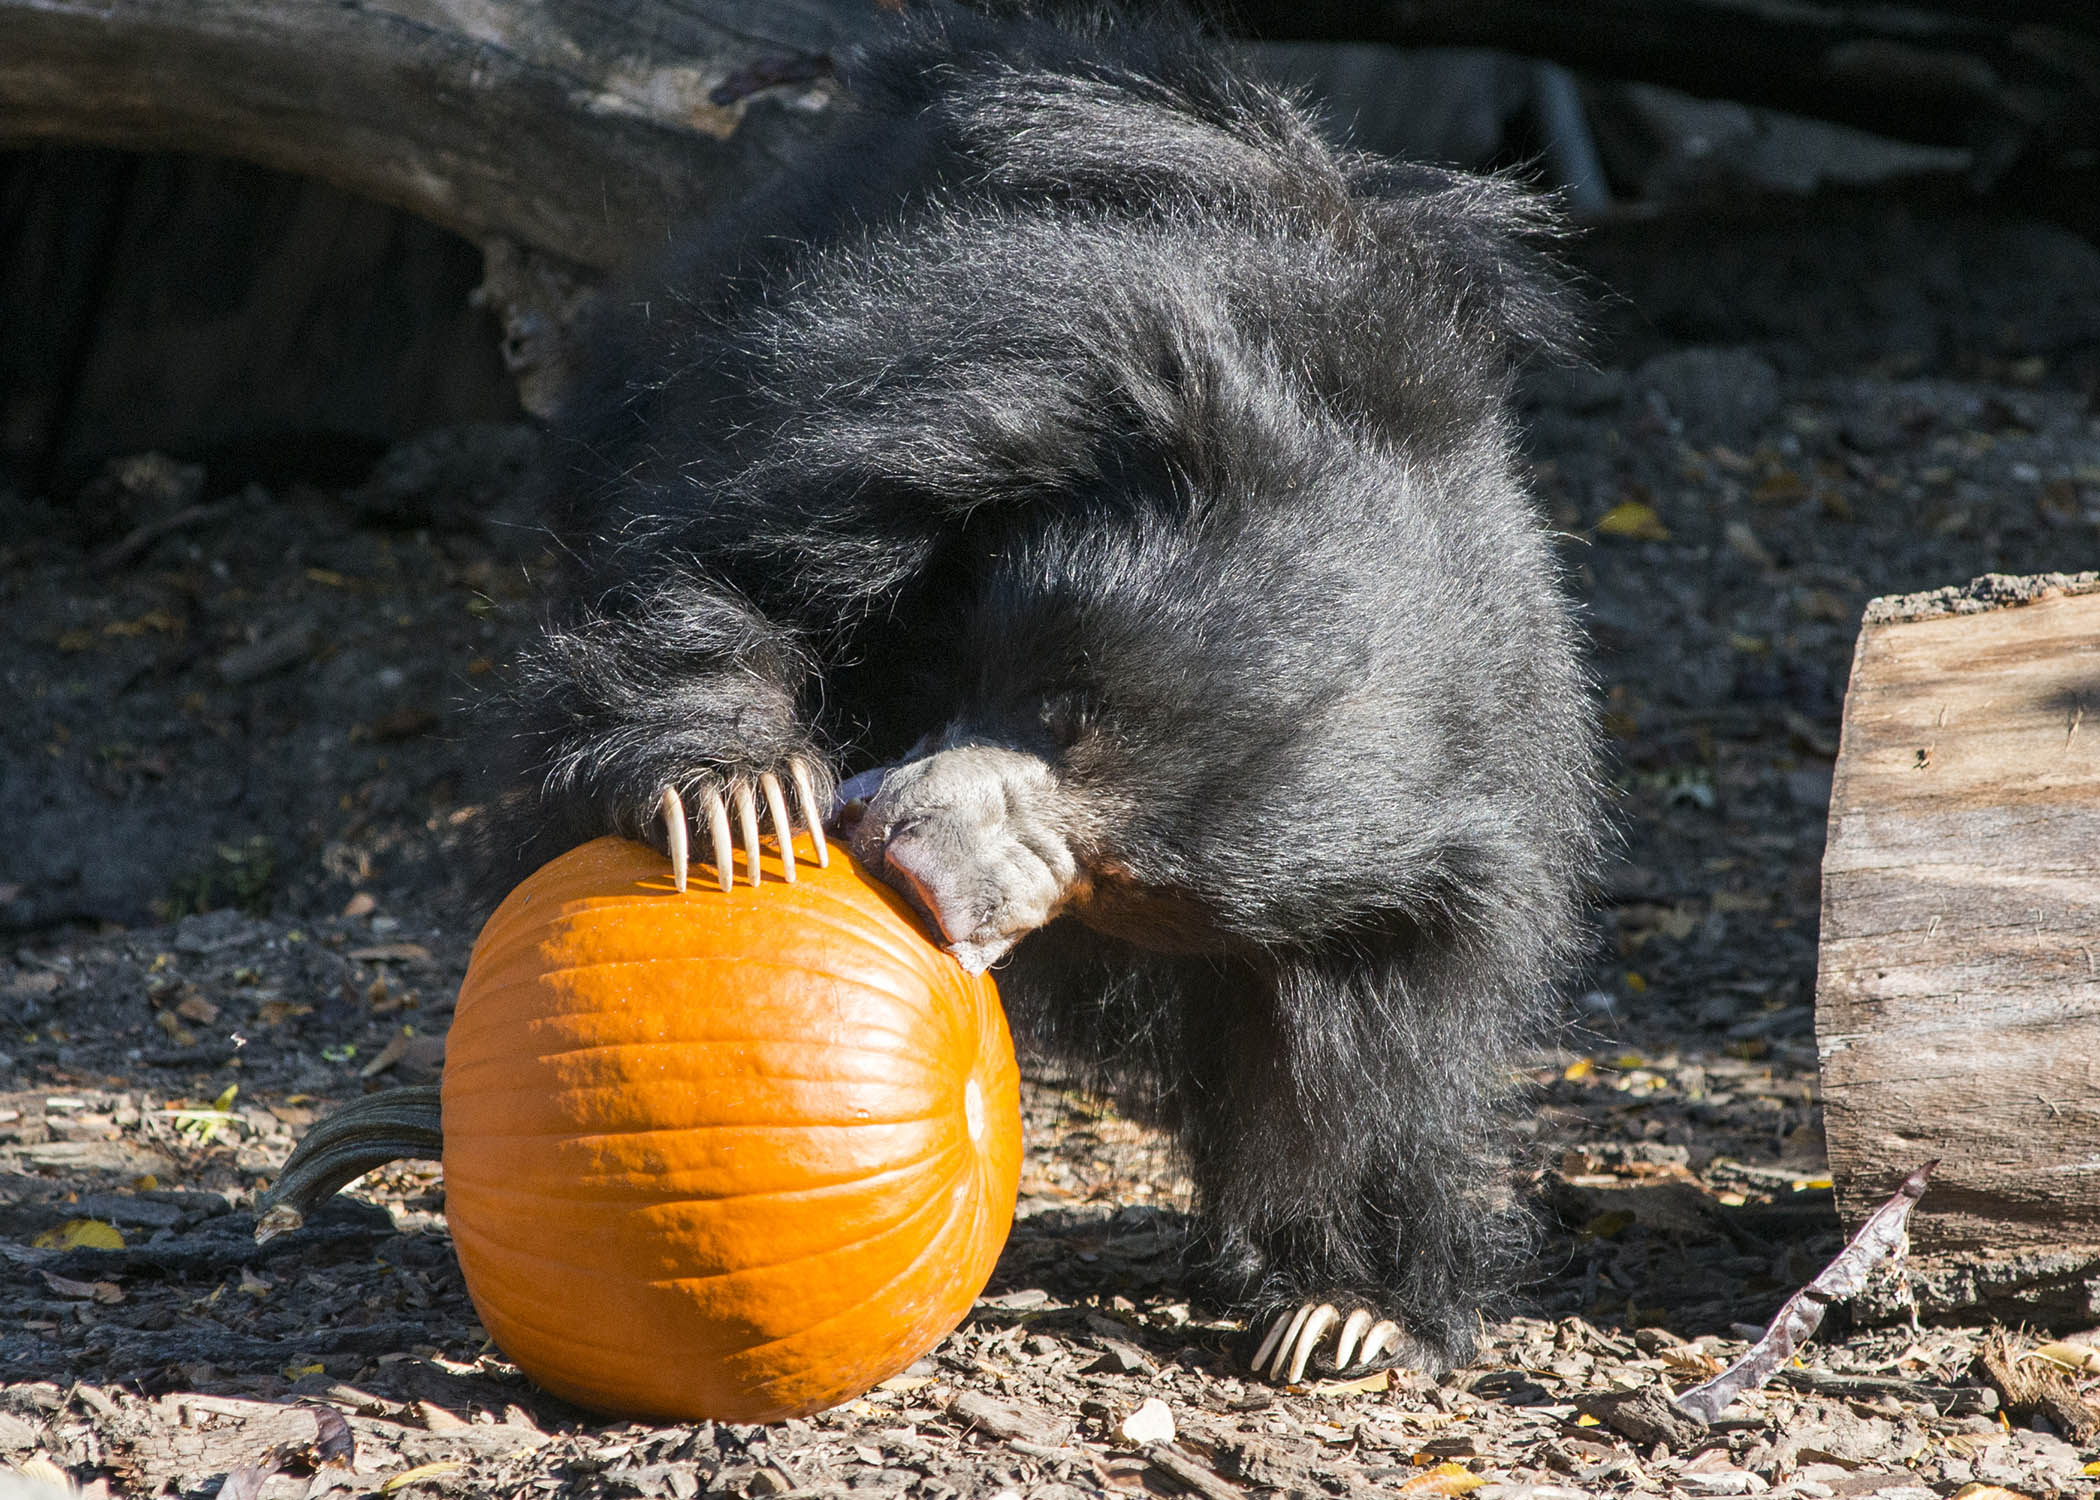 "<div class=""meta image-caption""><div class=""origin-logo origin-image wls""><span>WLS</span></div><span class=""caption-text"">Hani, a 14-year-old sloth bear at Brookfield Zoo, gets ready to dig into a pumpkin that animal care staff gave her as part of the zoo's enrichment program. (Kelly Tone/Chicago Zoological Society)</span></div>"